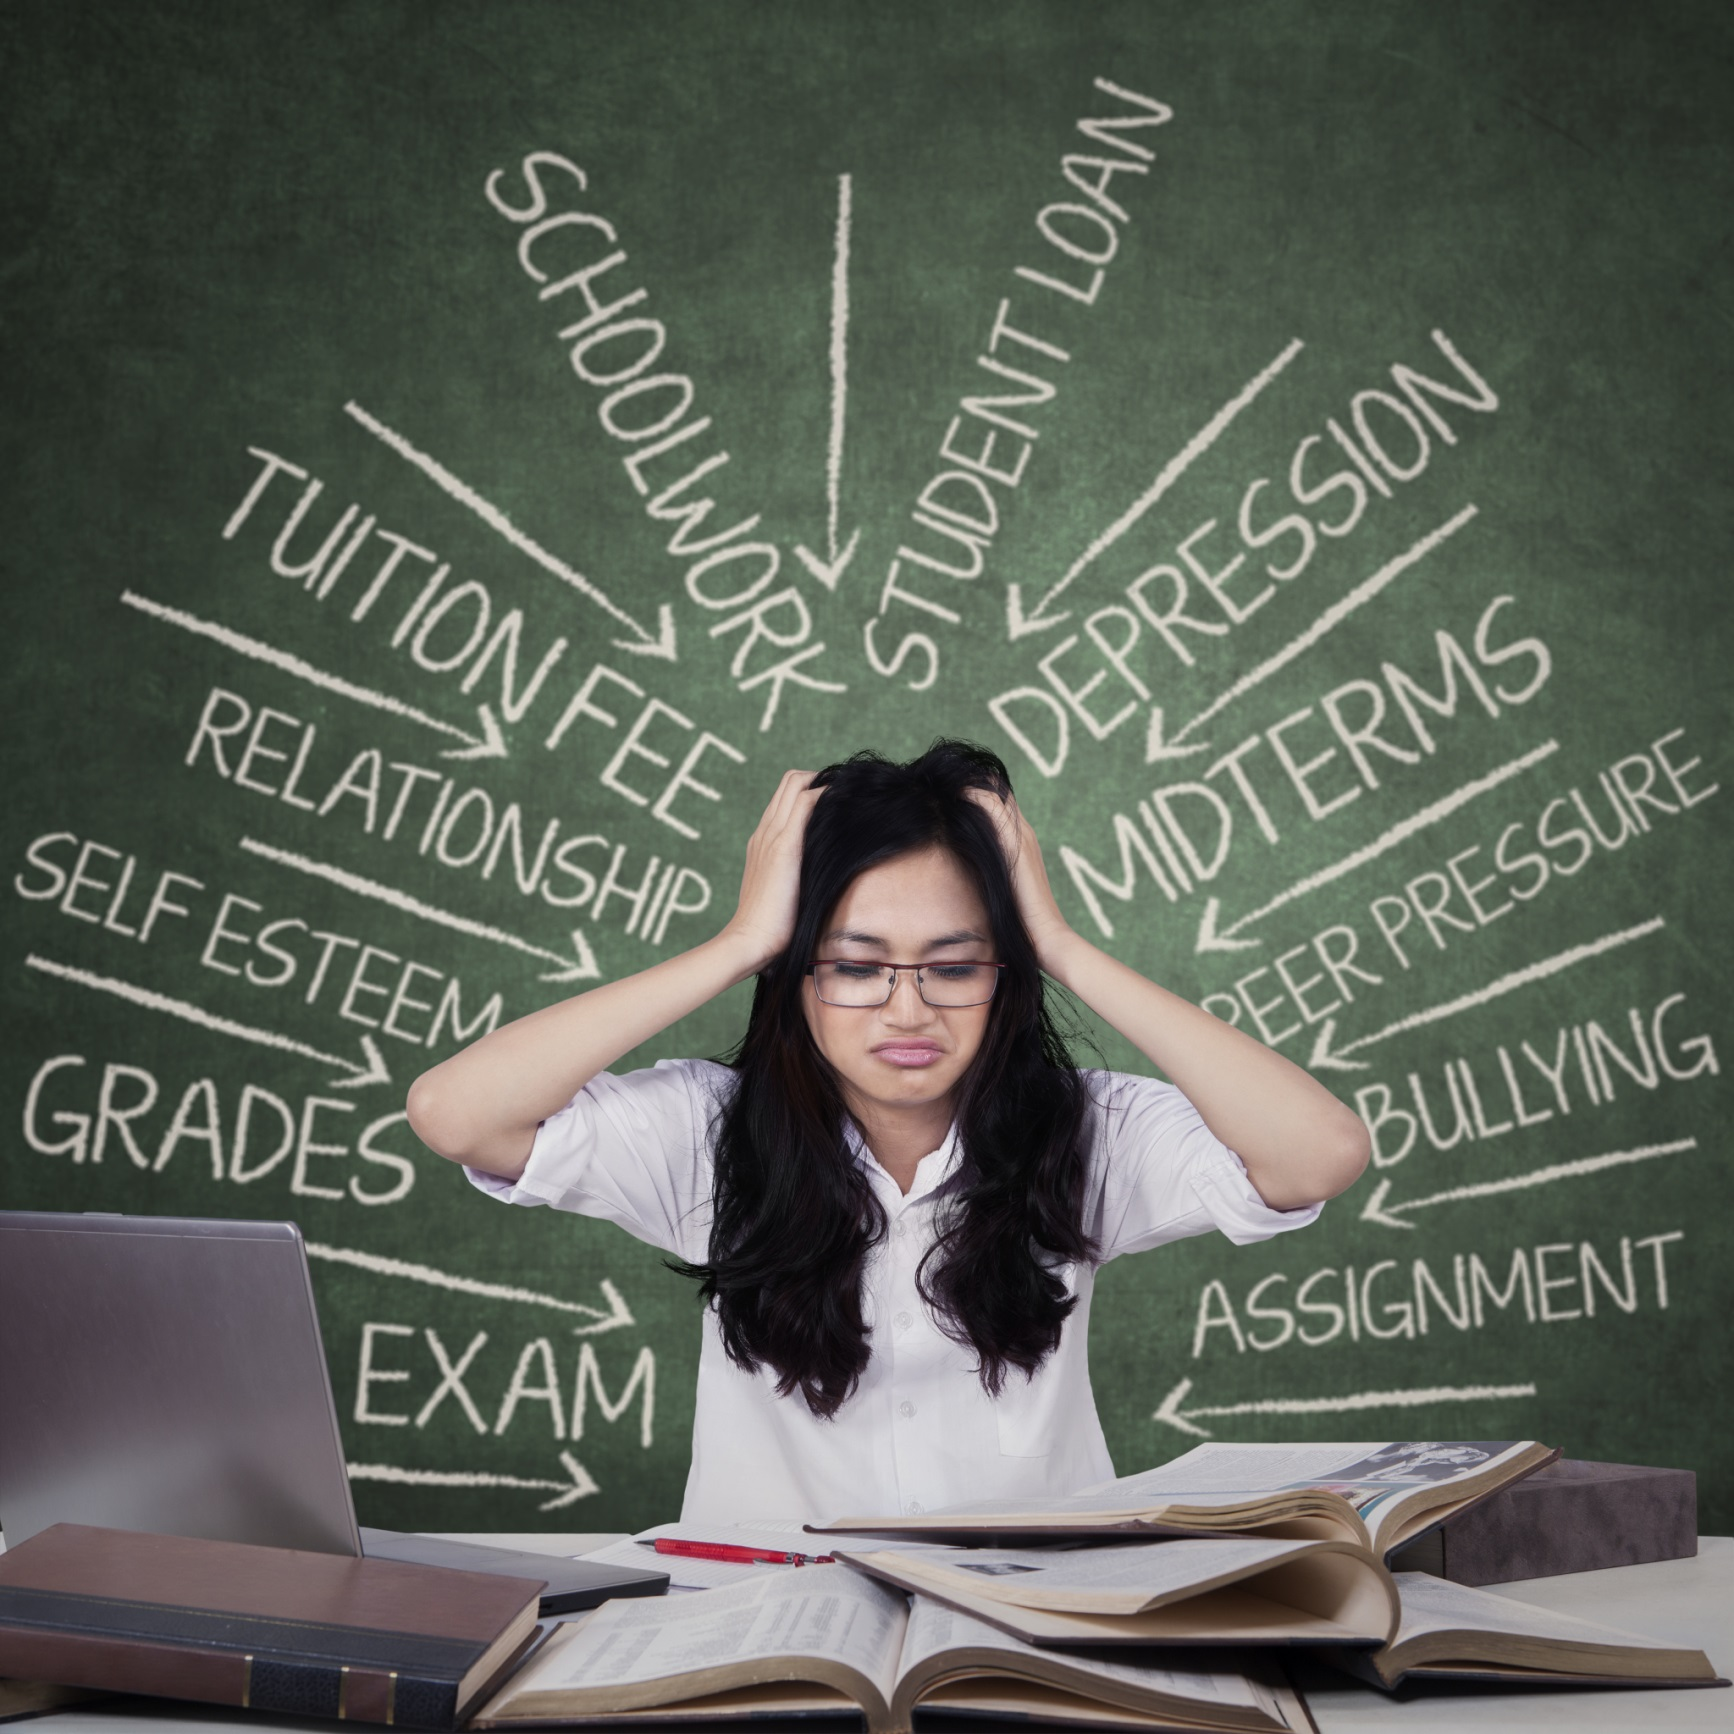 Stress Test Business: How College Students Can Deal With Anxiety